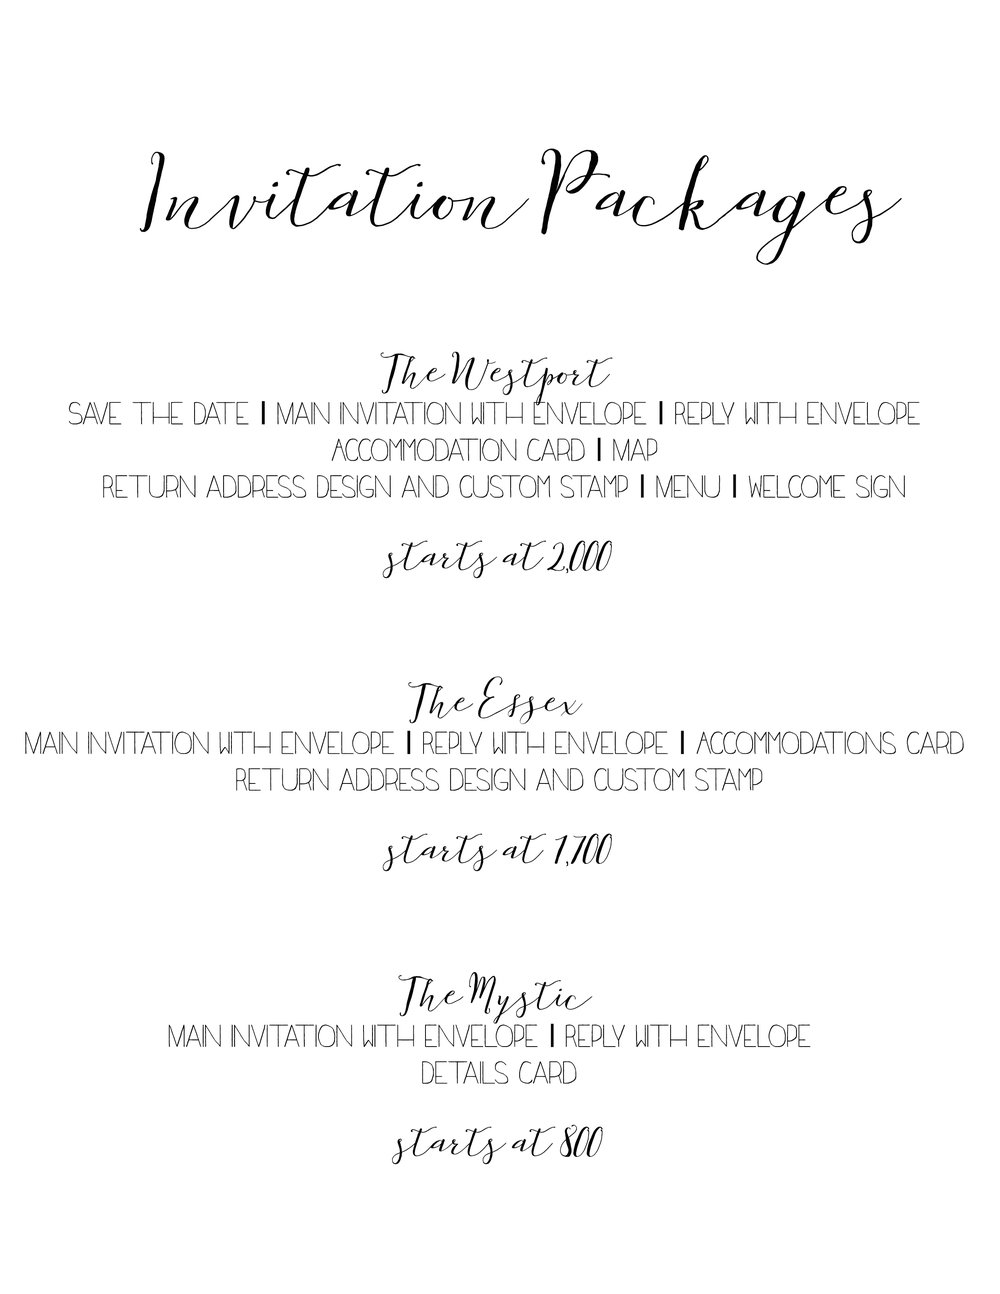 Invitation package update.jpg